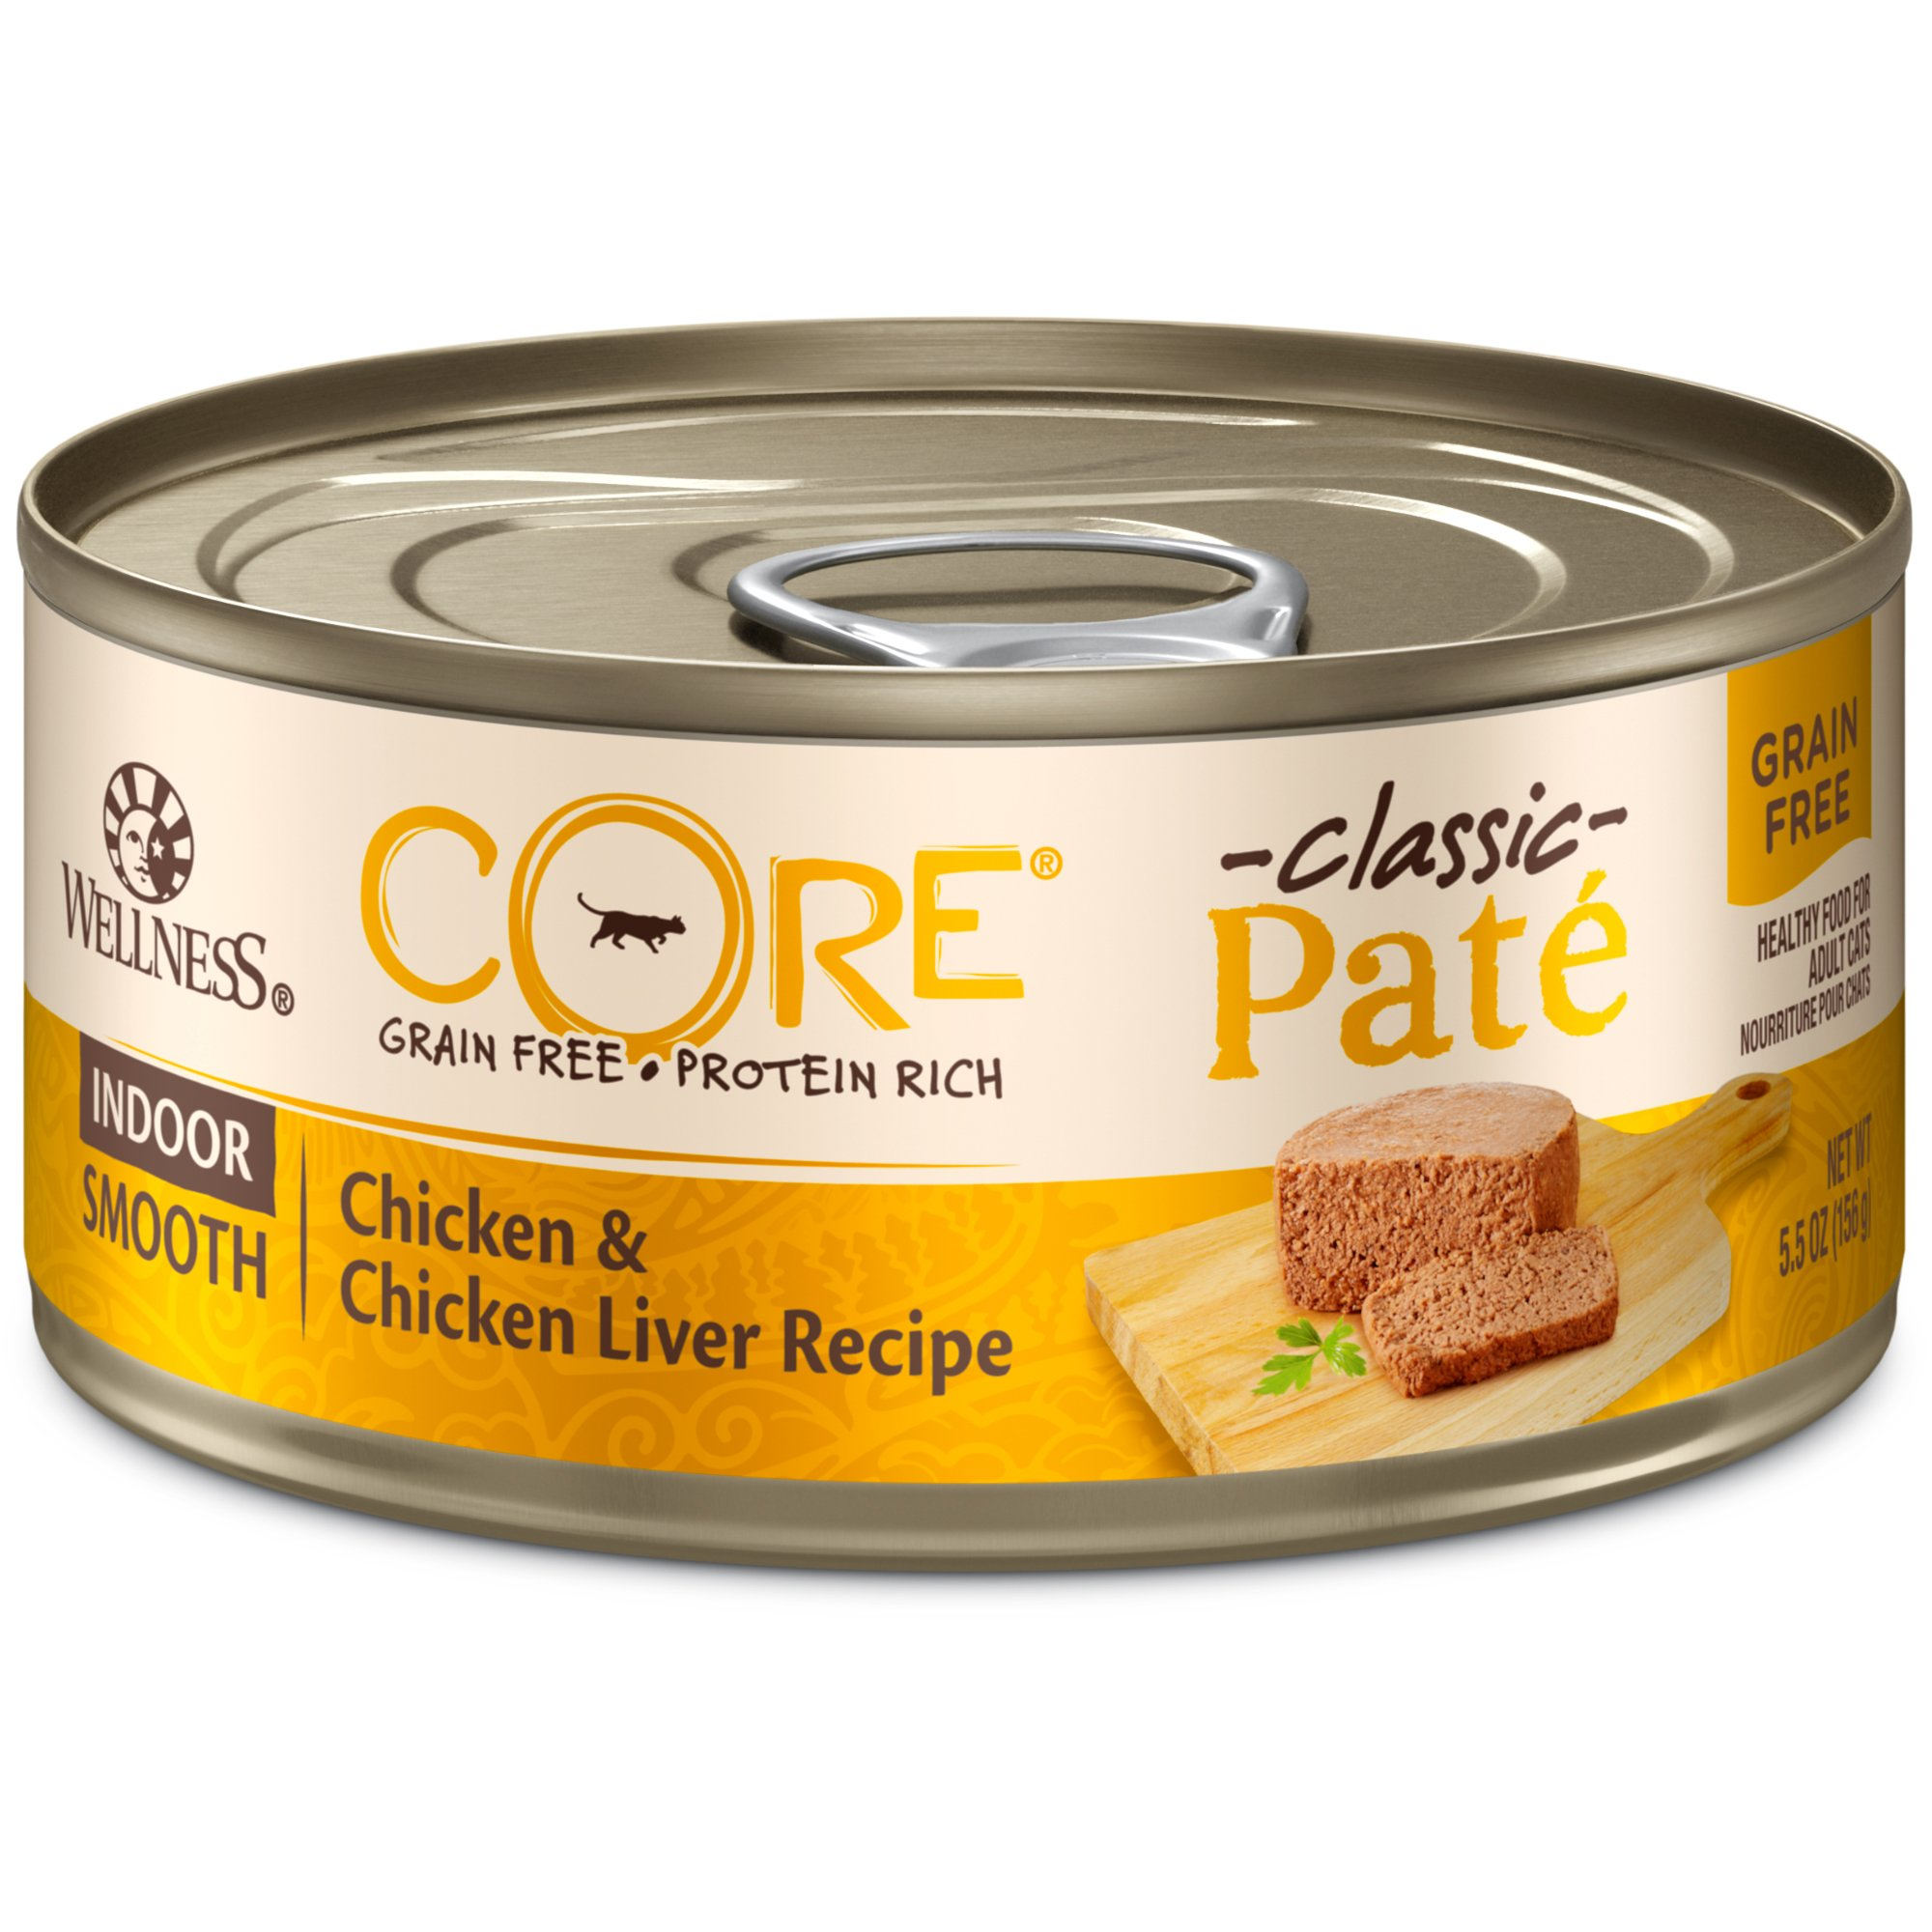 Wellness CORE Natural Grain Free Wet Canned Cat Food, Indoor Recipe, 5.5-Ounce Can (Pack of 24) by WELLNESS CORE